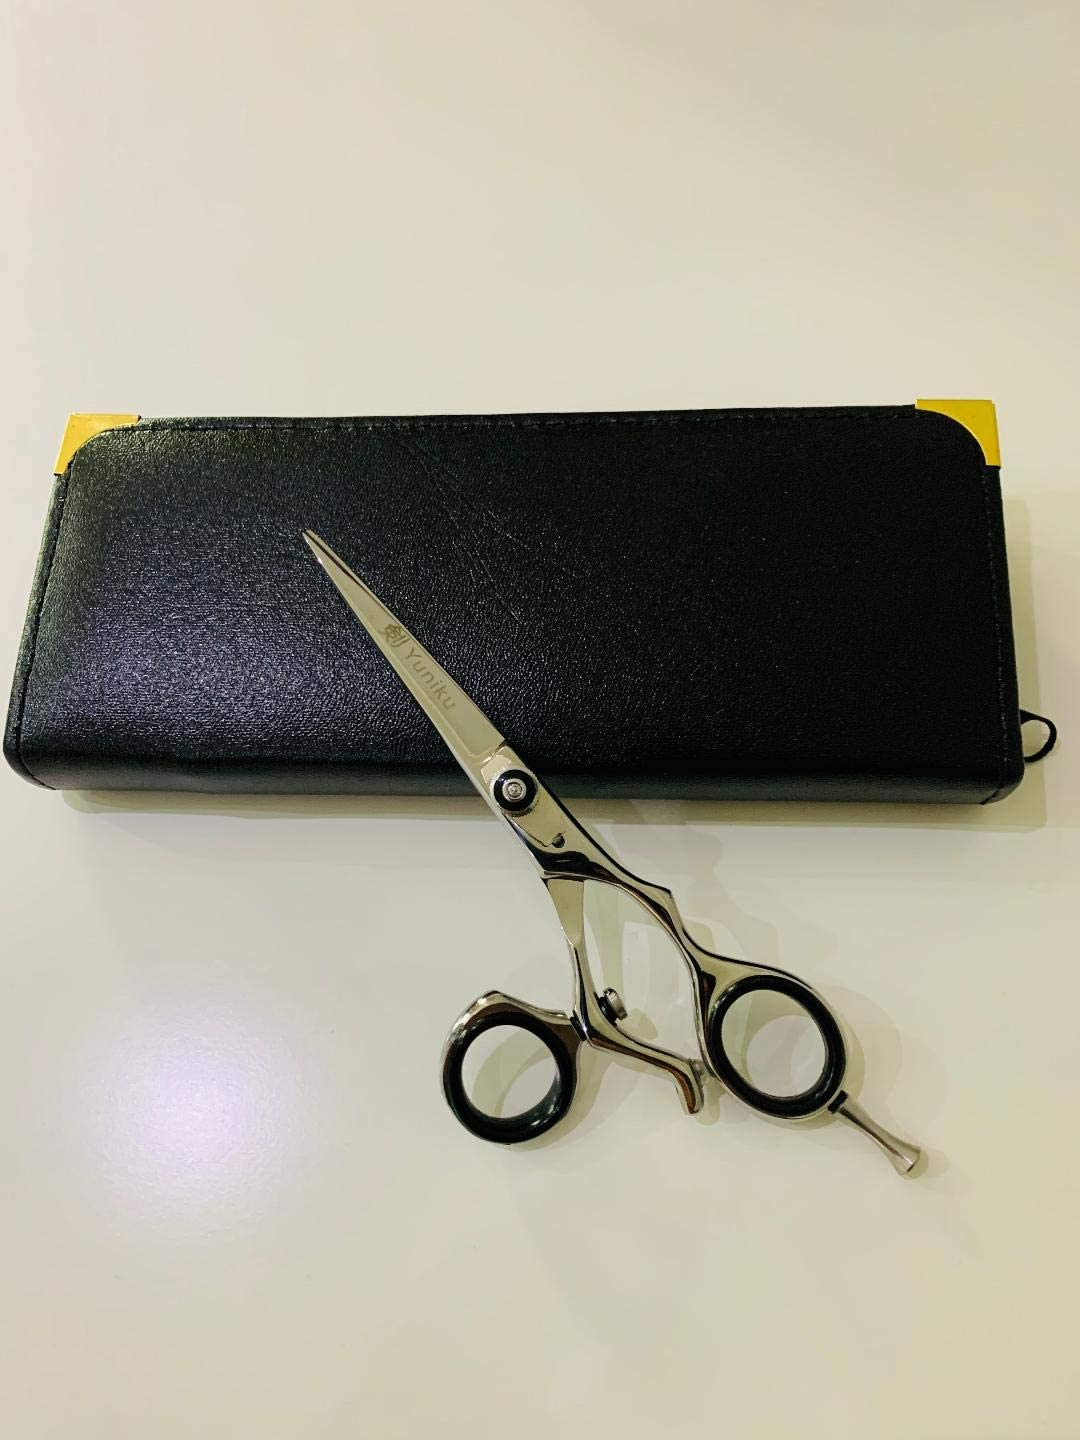 Swivel Ring Professional Hairdressing Scissors Haircutting Barber